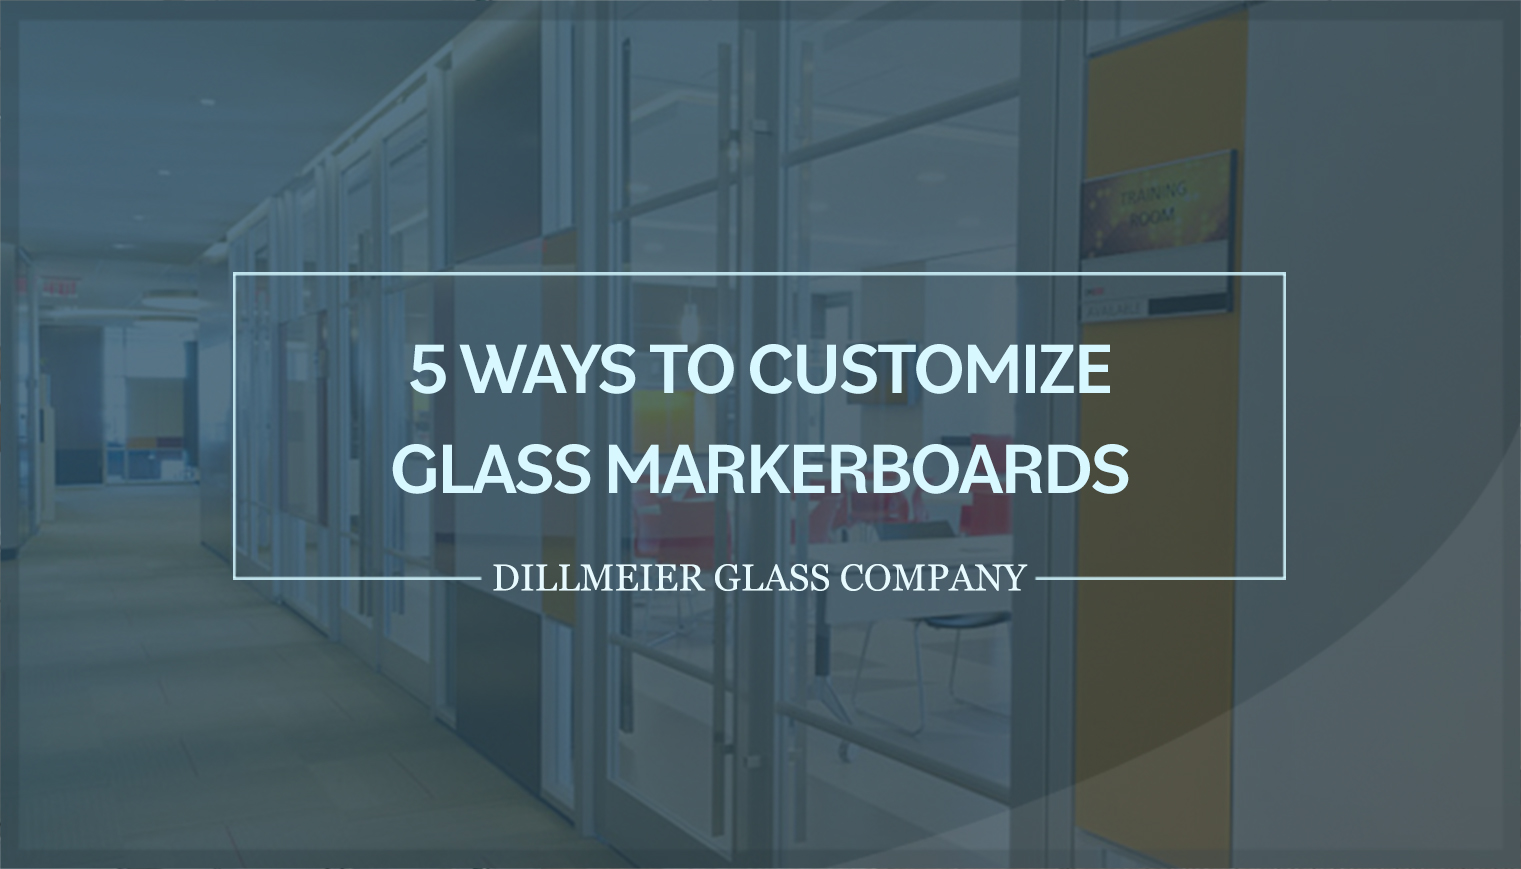 5 Ways to Customize Glass Markerboards